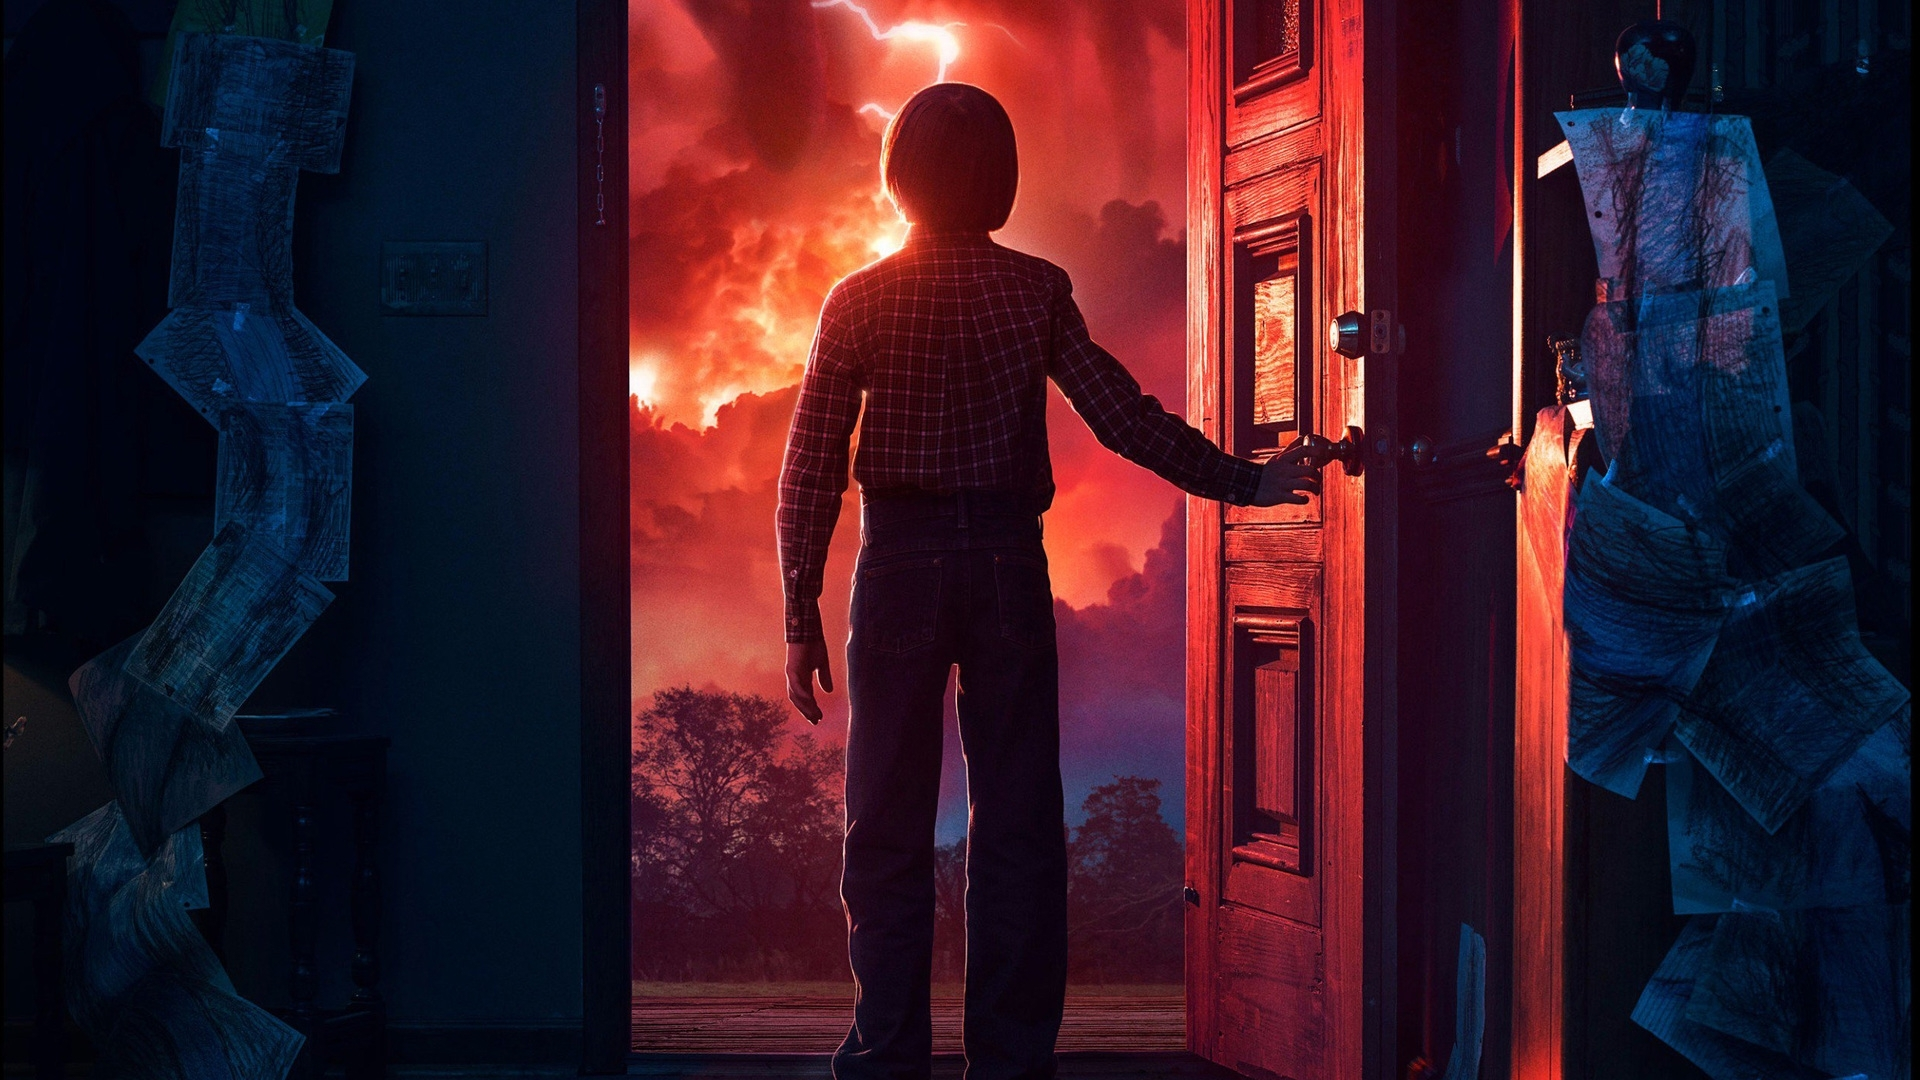 1920x1080 stranger things season 2 2017 laptop full hd 1080p hd 4k